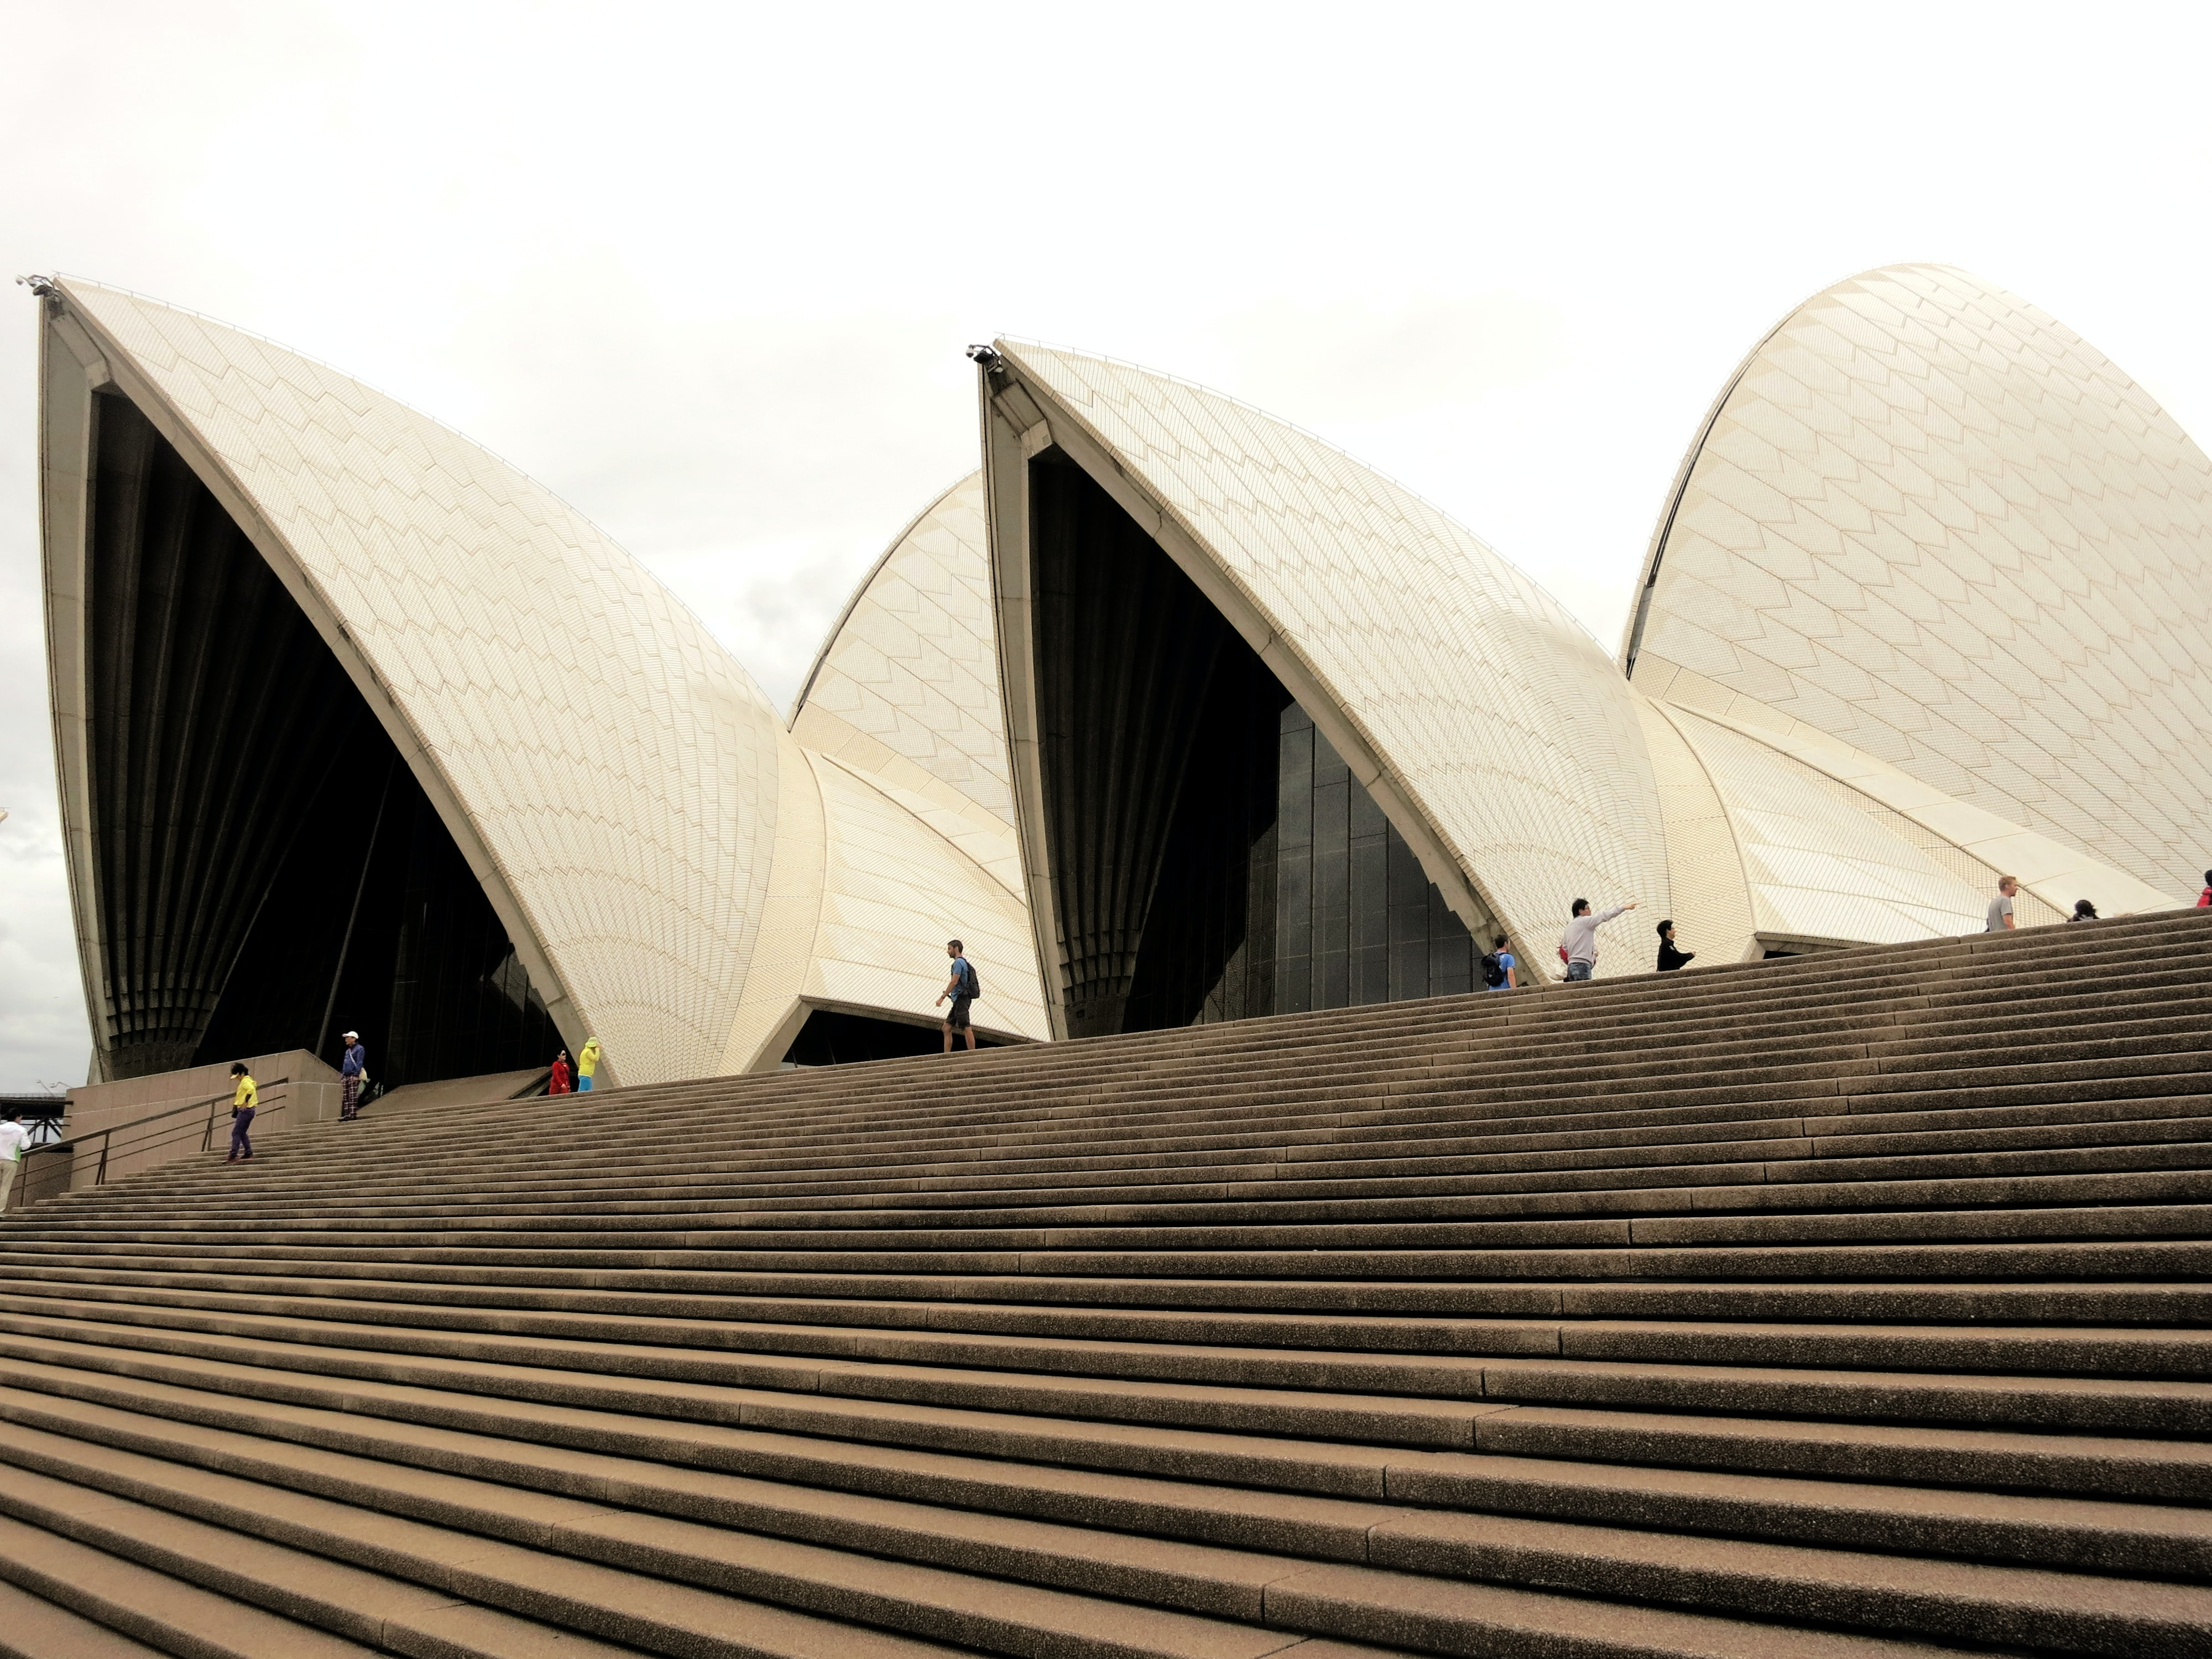 Shot of the steps to the Sydney Opera House where tourists are walking around under an overcast sky